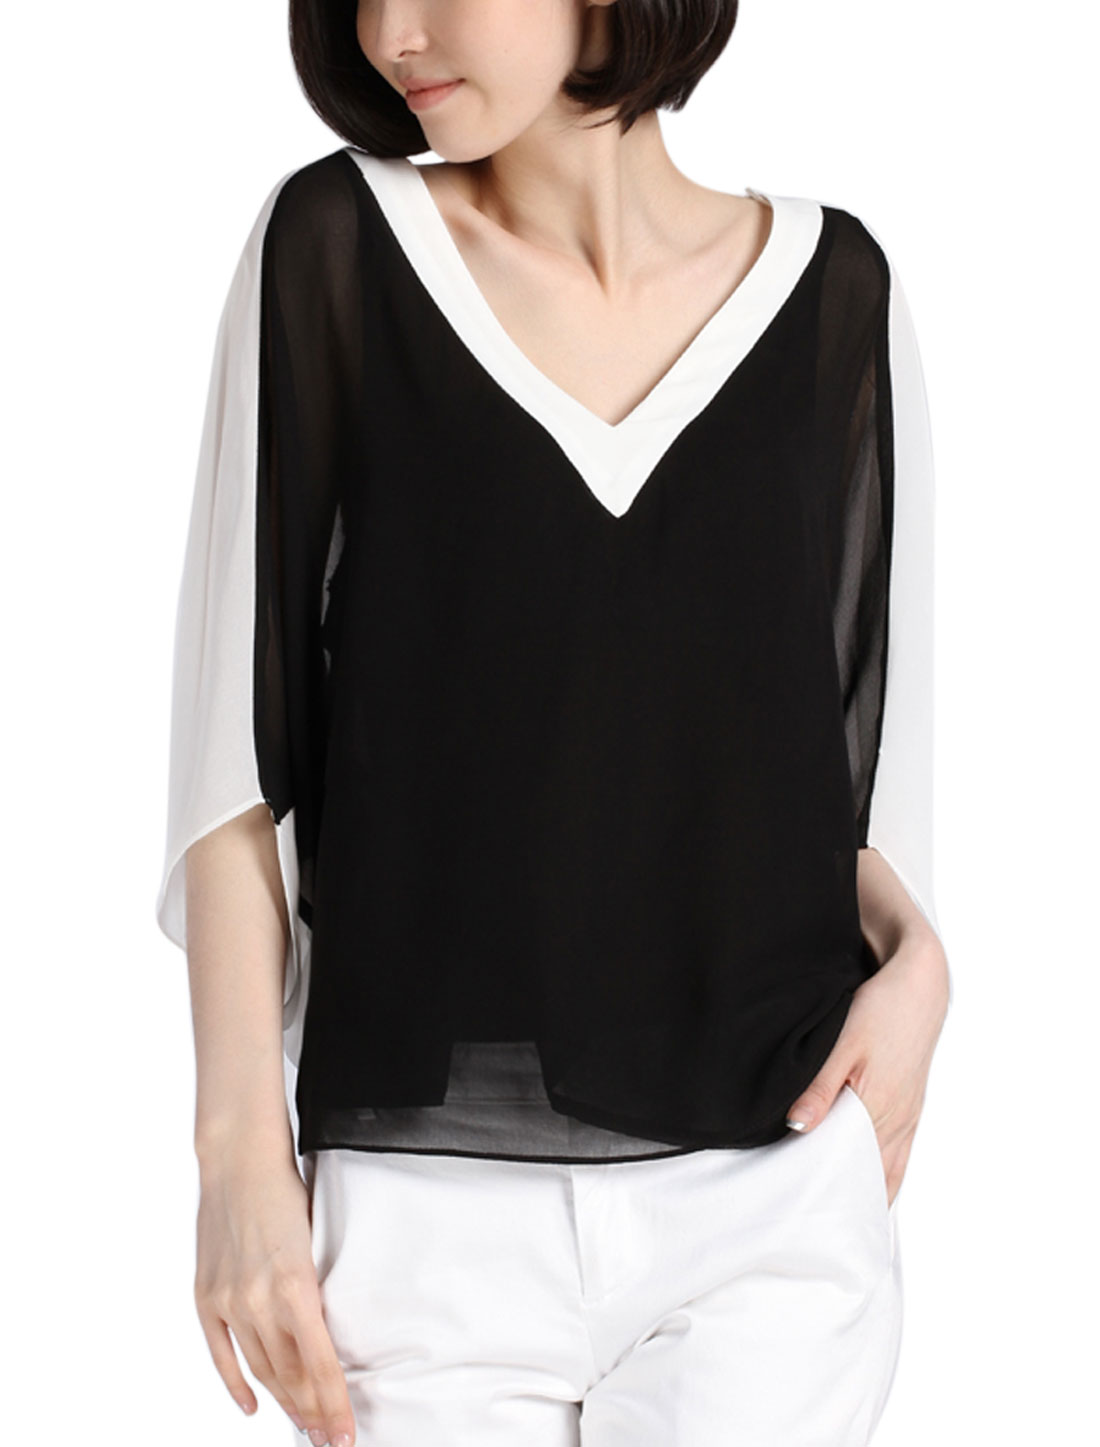 Lady Color Block V Neck Batwing Sleeve Semi Sheer Chiffon Top Black White XS